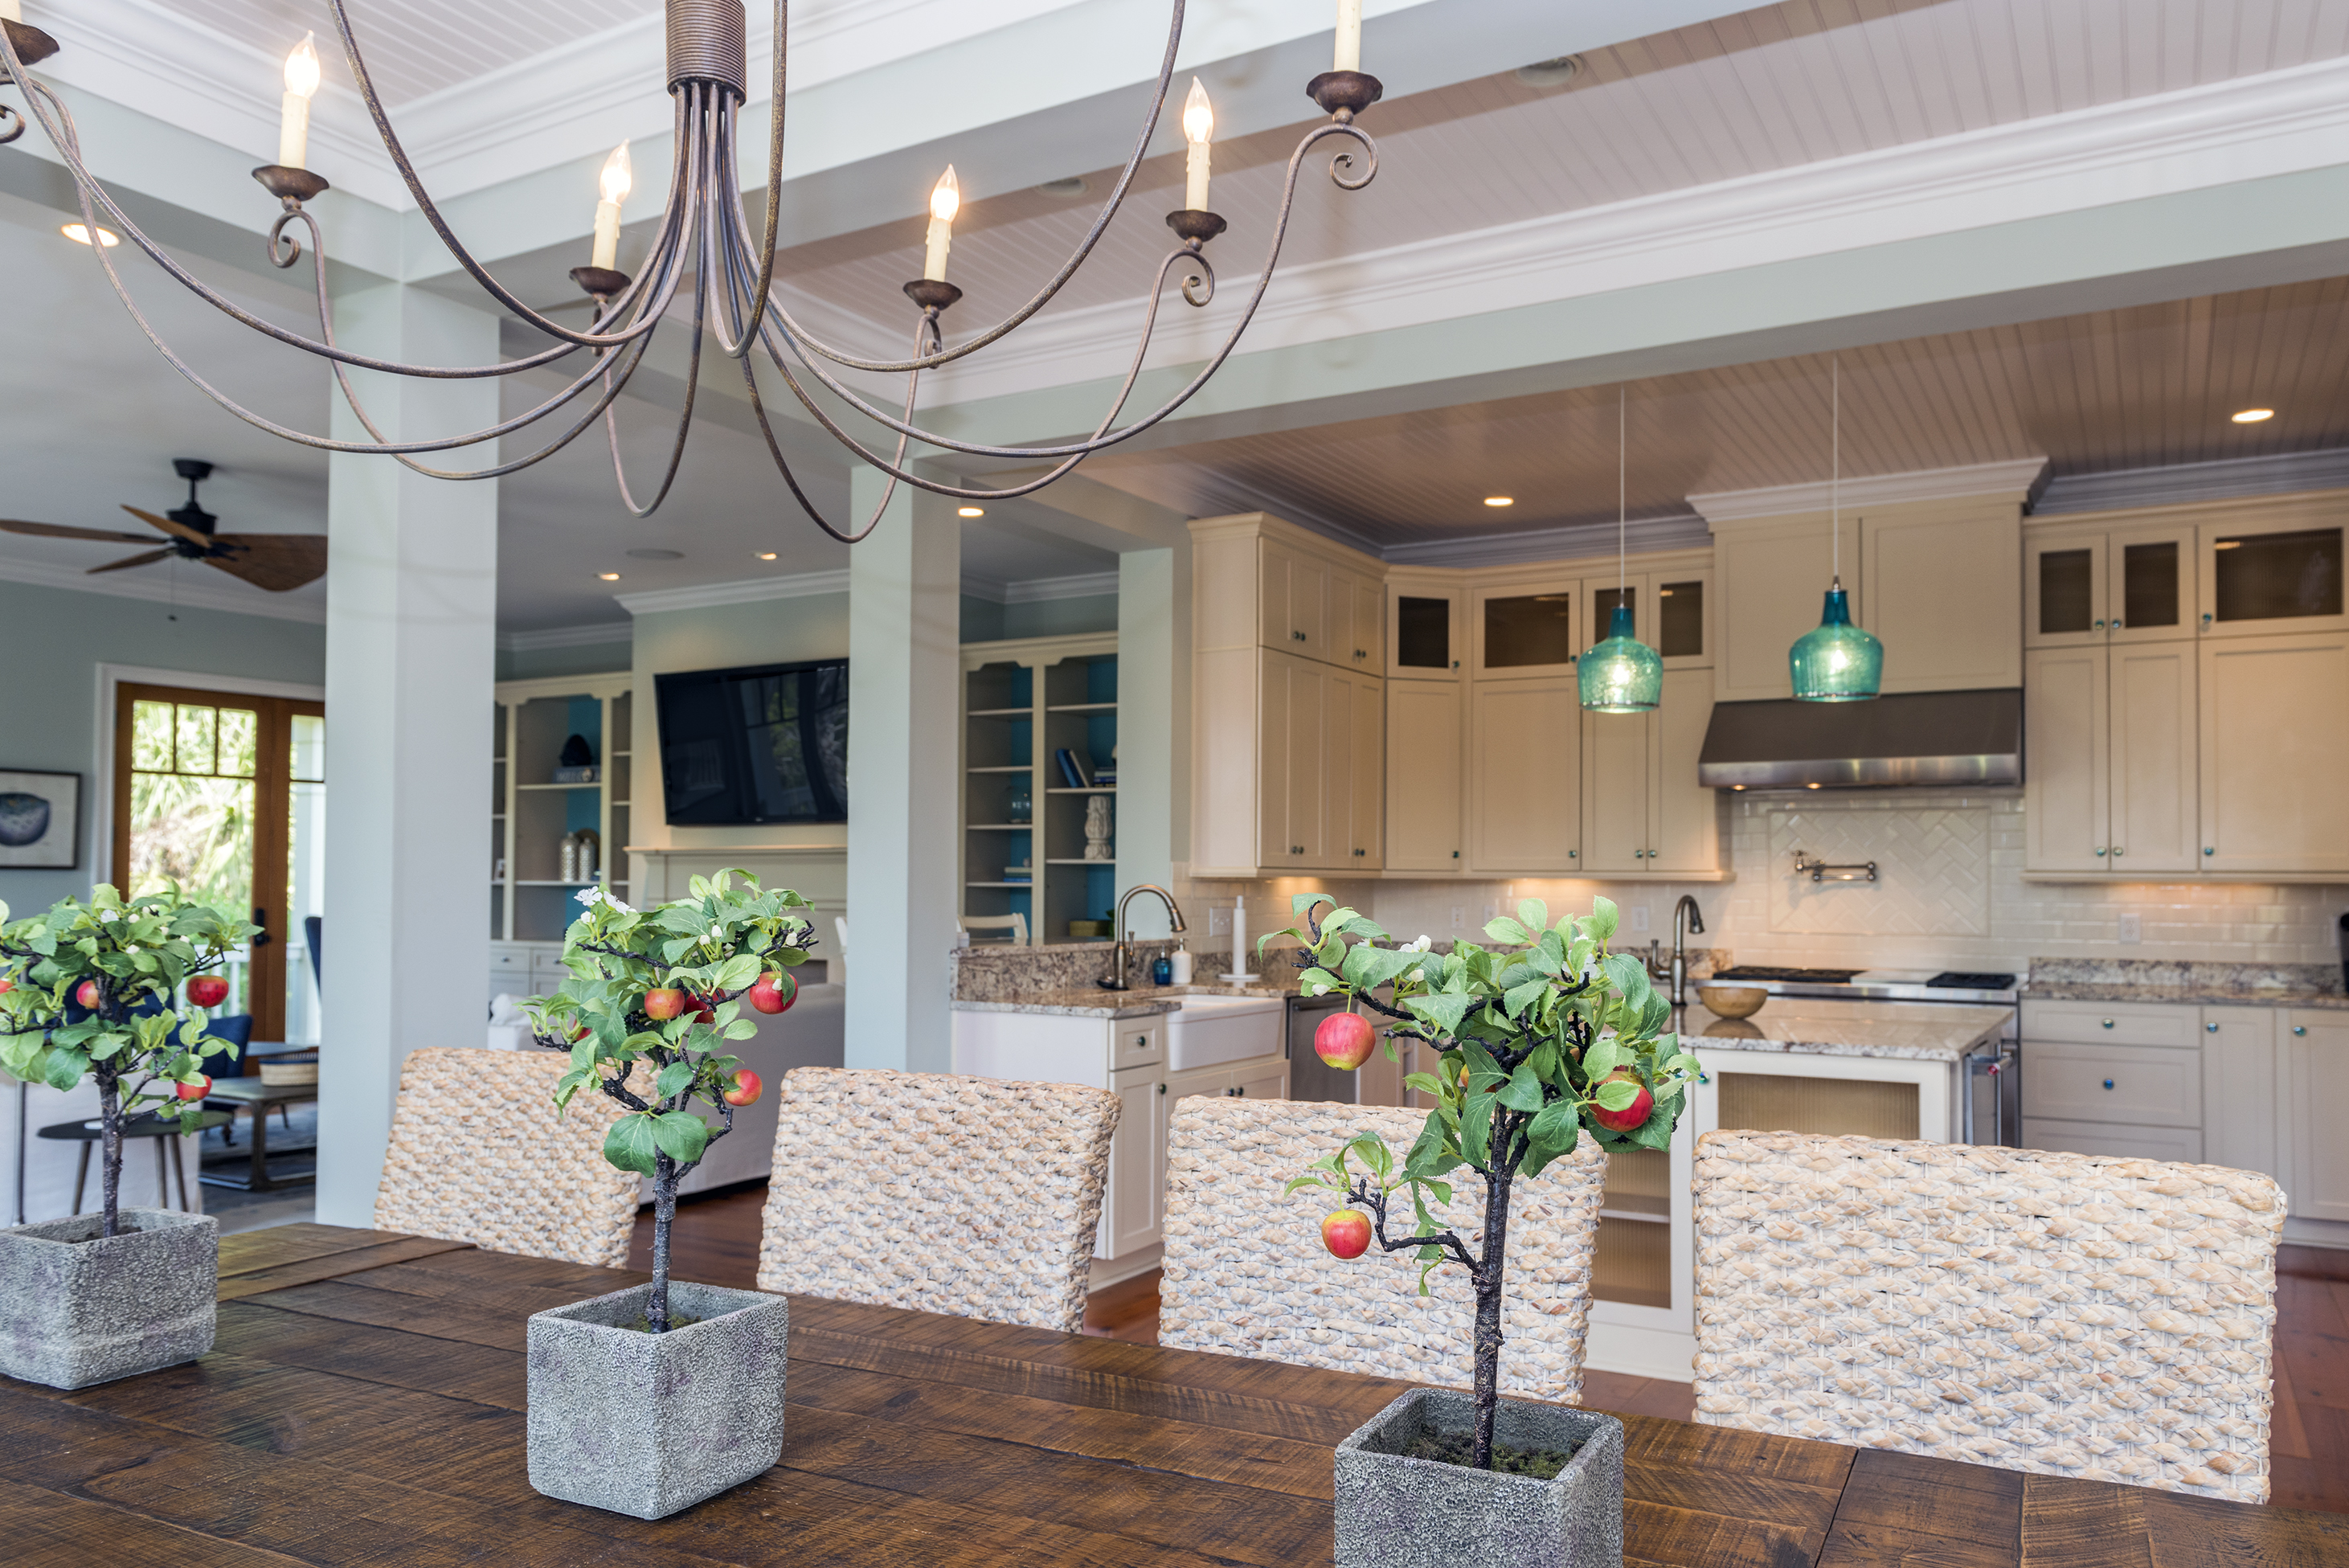 The kitchen is integrated into the great room and dining area, so everyone is included!